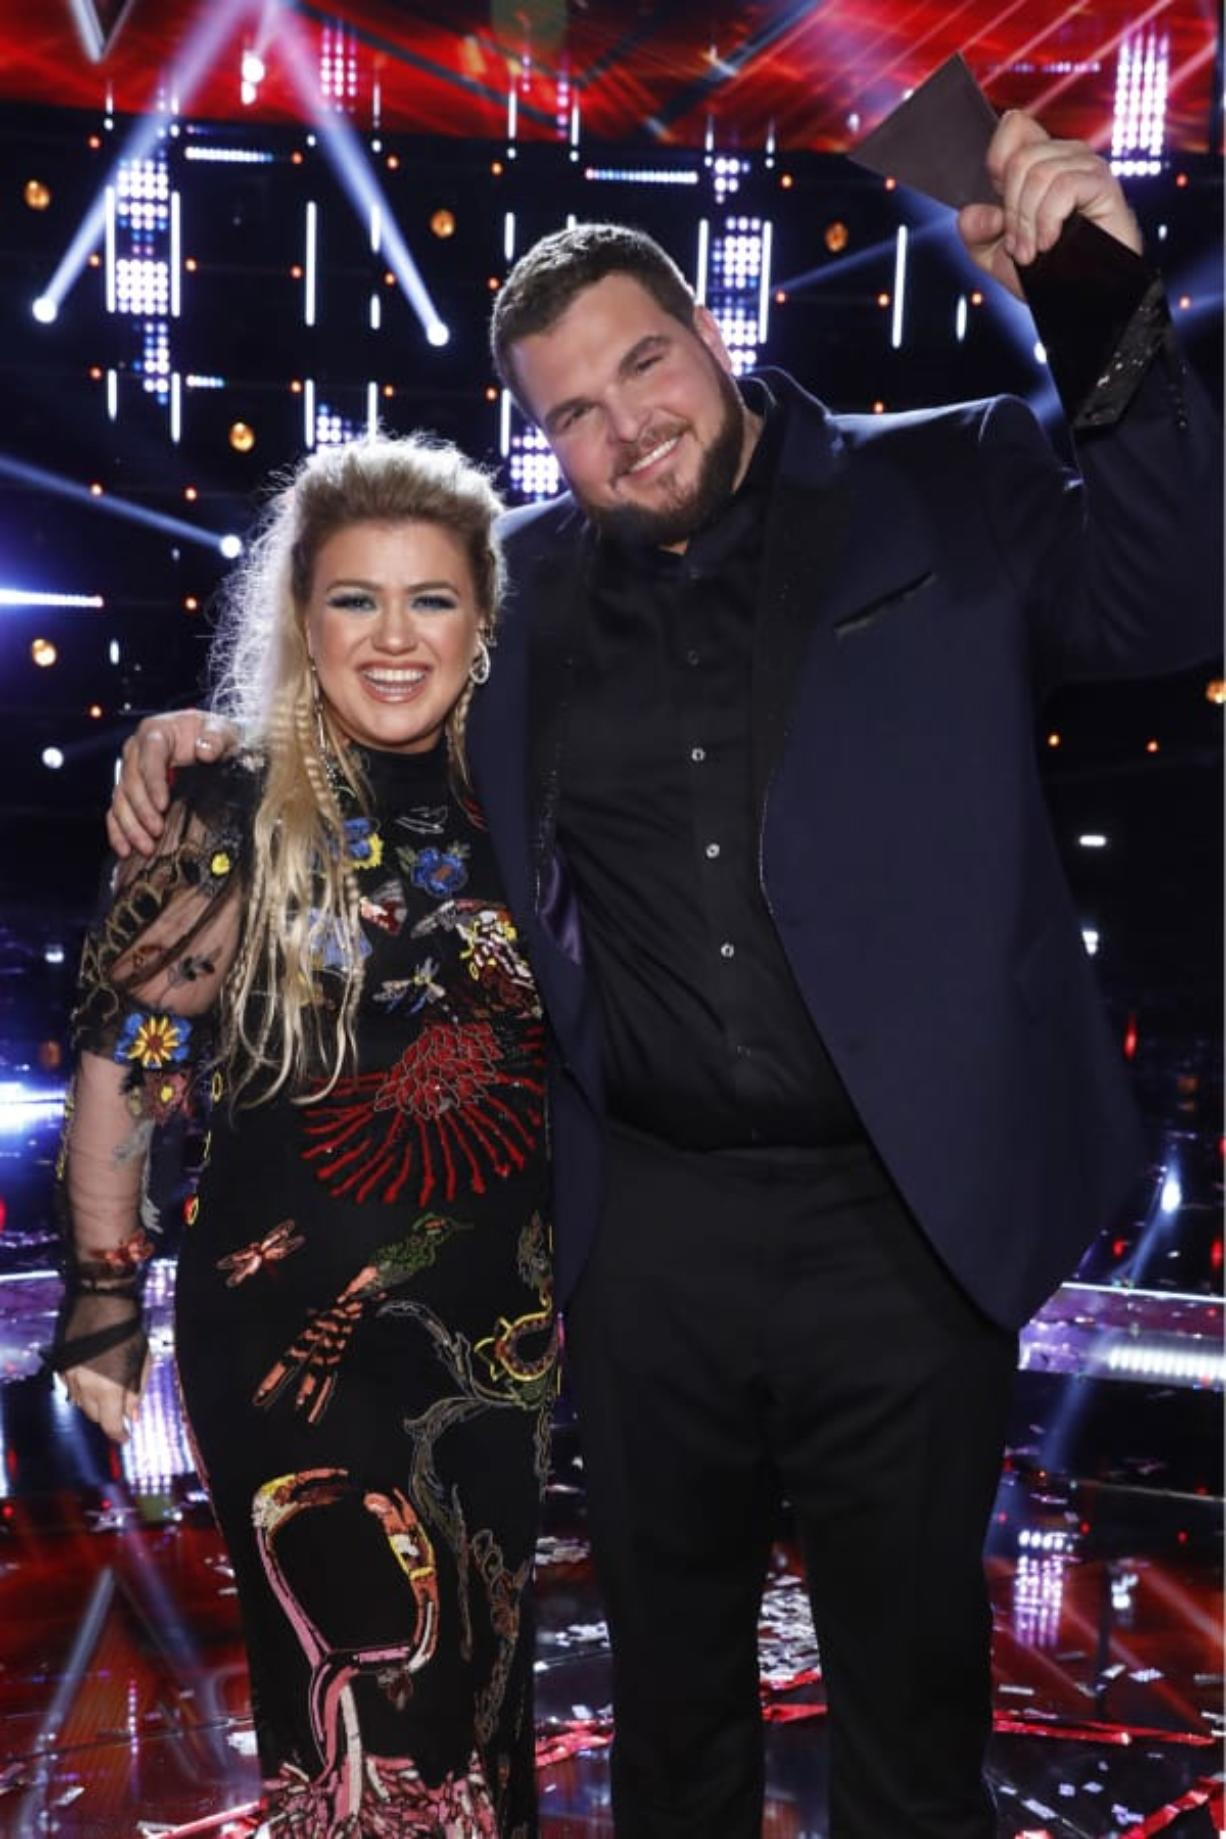 Winner of the voice 2019